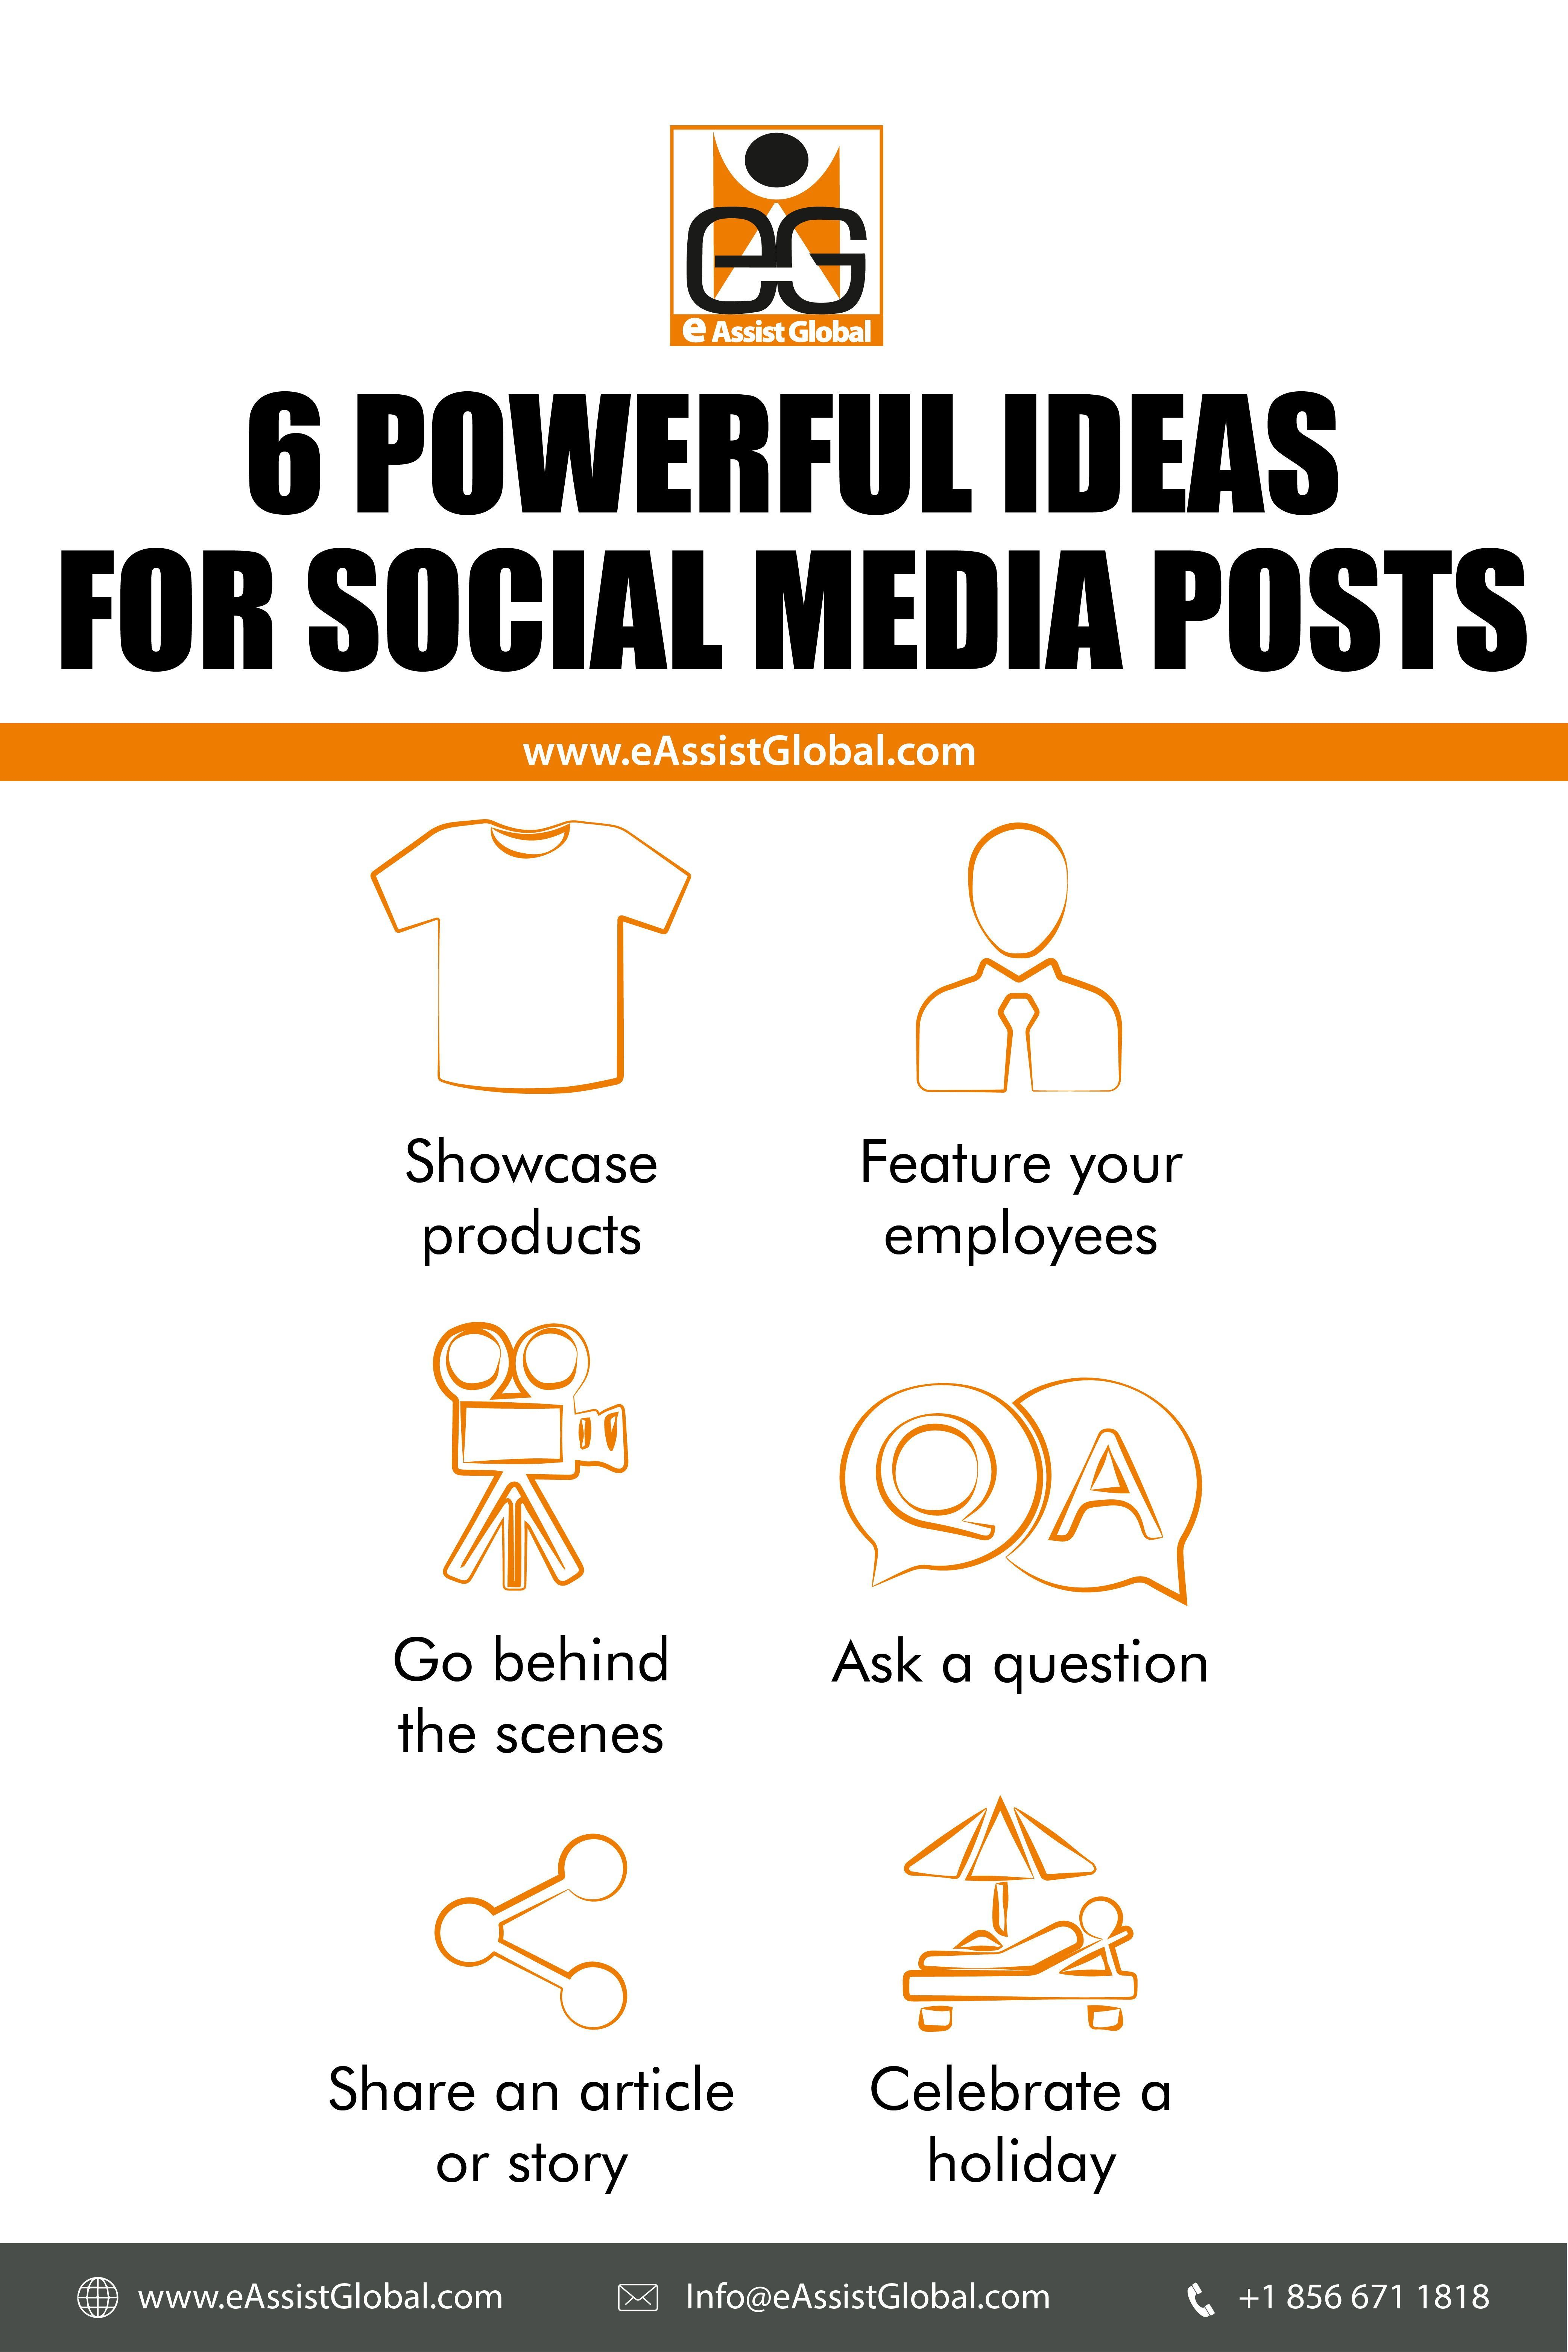 6 Powerful Ideas For Social Media Posts In 2020 Social Media Post Website Content Writing Social Media [ 6251 x 4168 Pixel ]